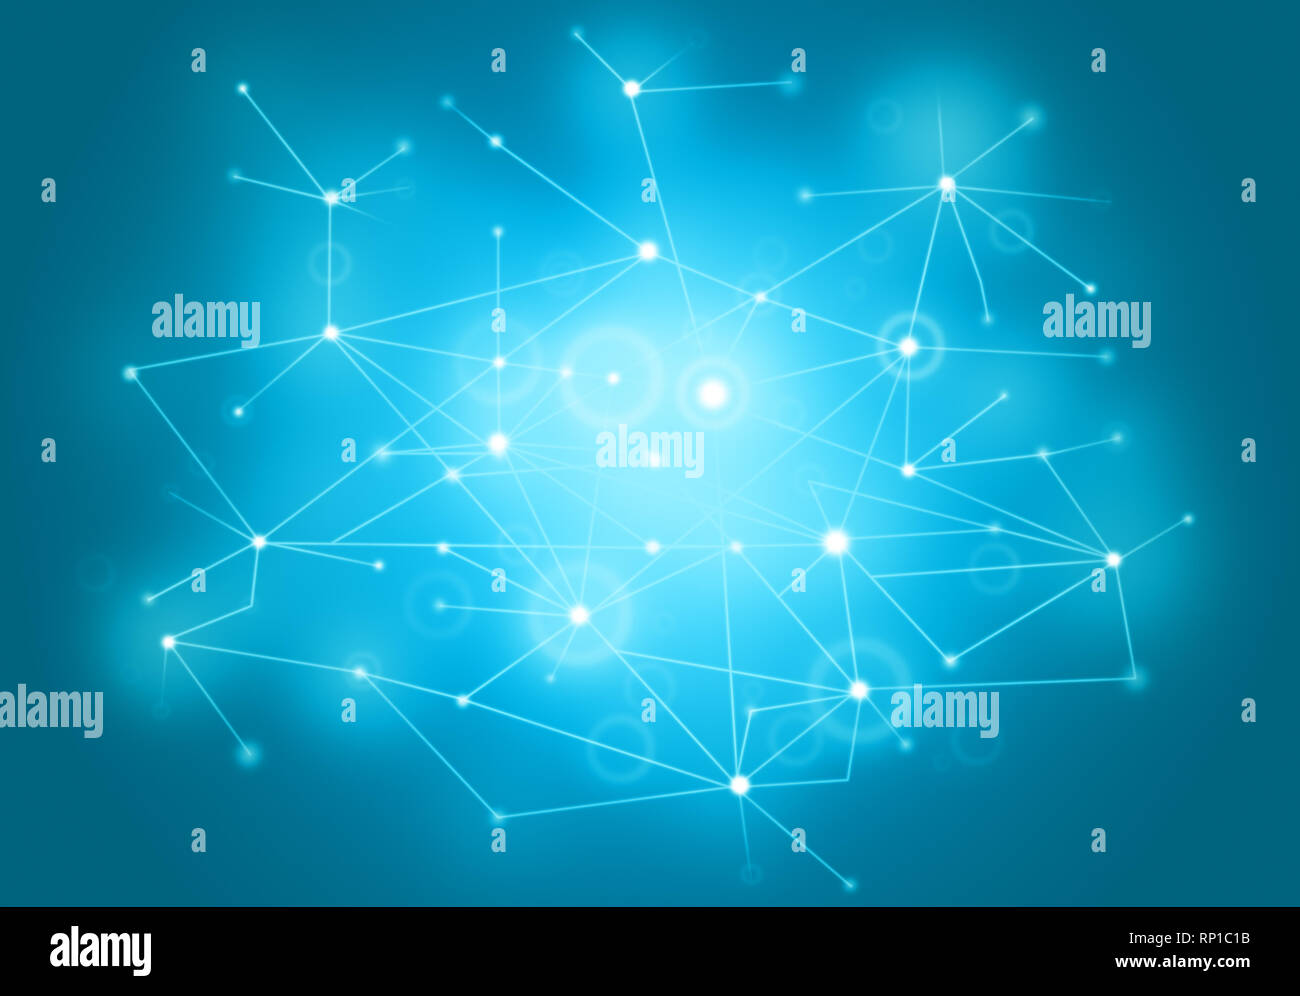 Futuristic polygonal style abstract vector network background for business, technology or science presentation. Molecular structure,  cybernetic dots. - Stock Image